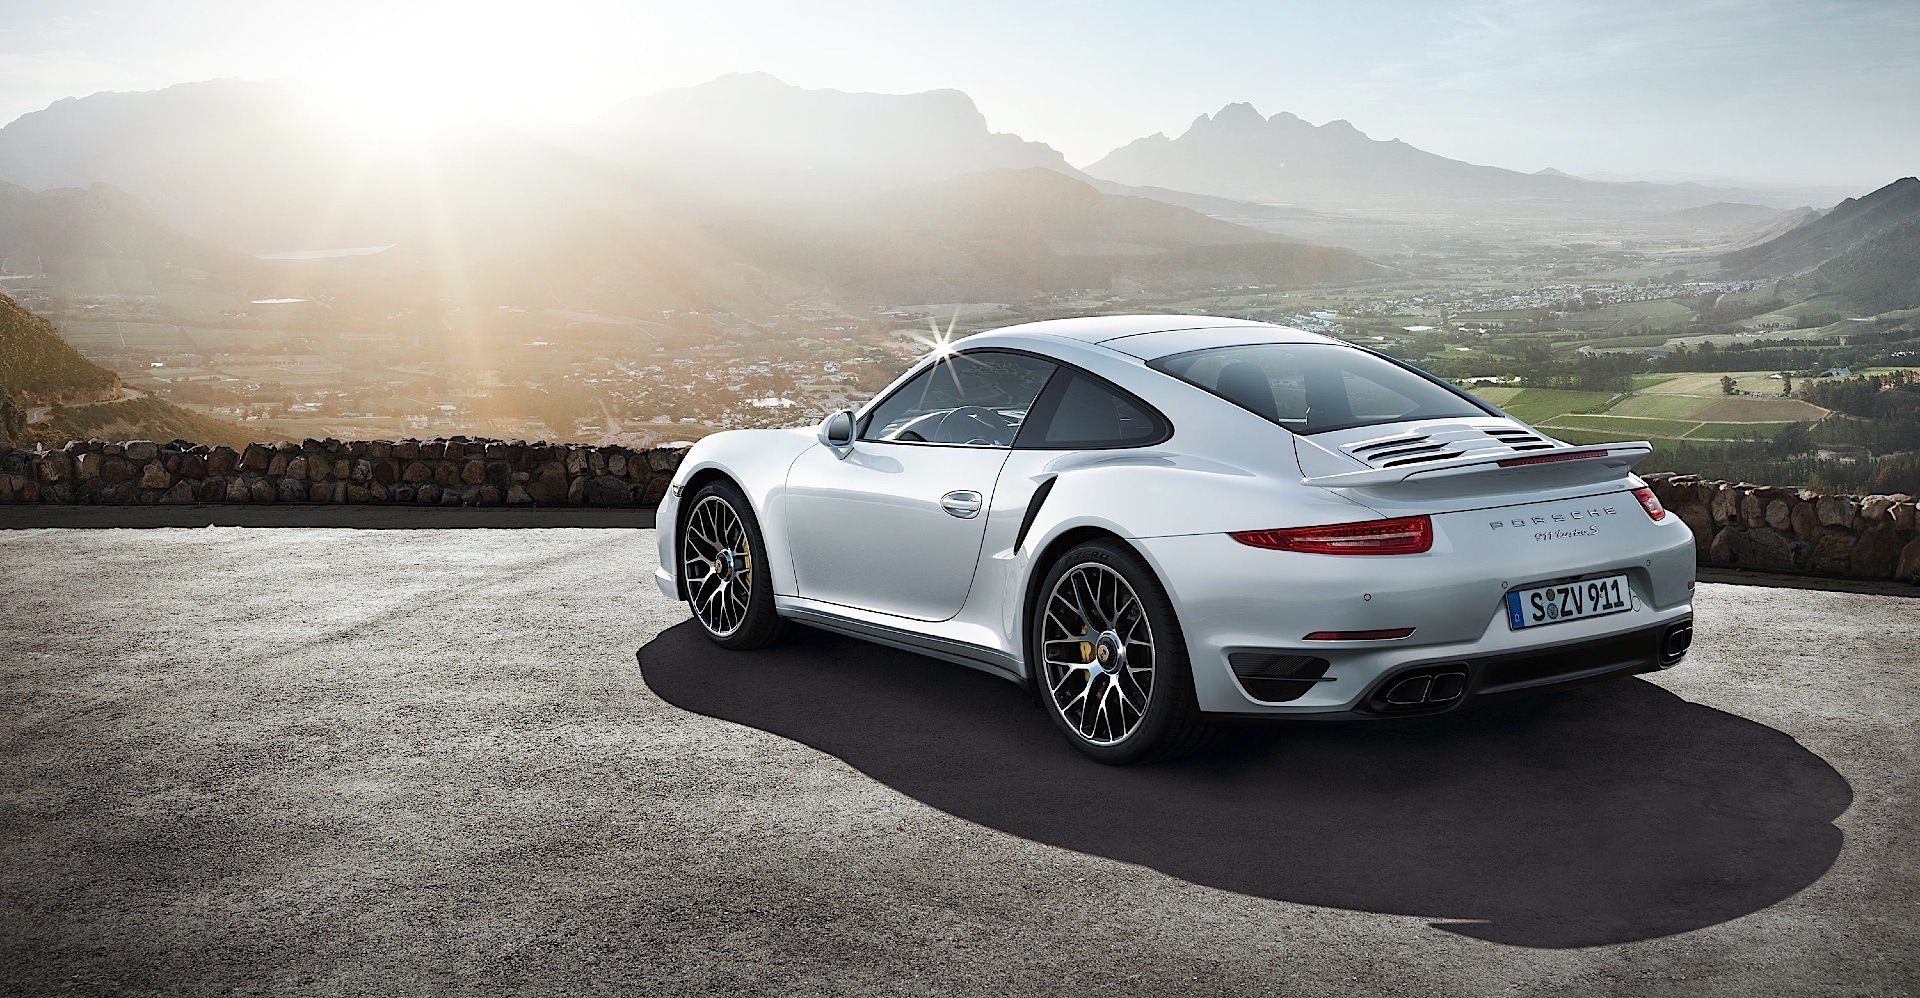 porsche 991 engine diagram porsche 911 turbo s  991  specs   photos 2013  2014  2015  2016  porsche 911 turbo s  991  specs